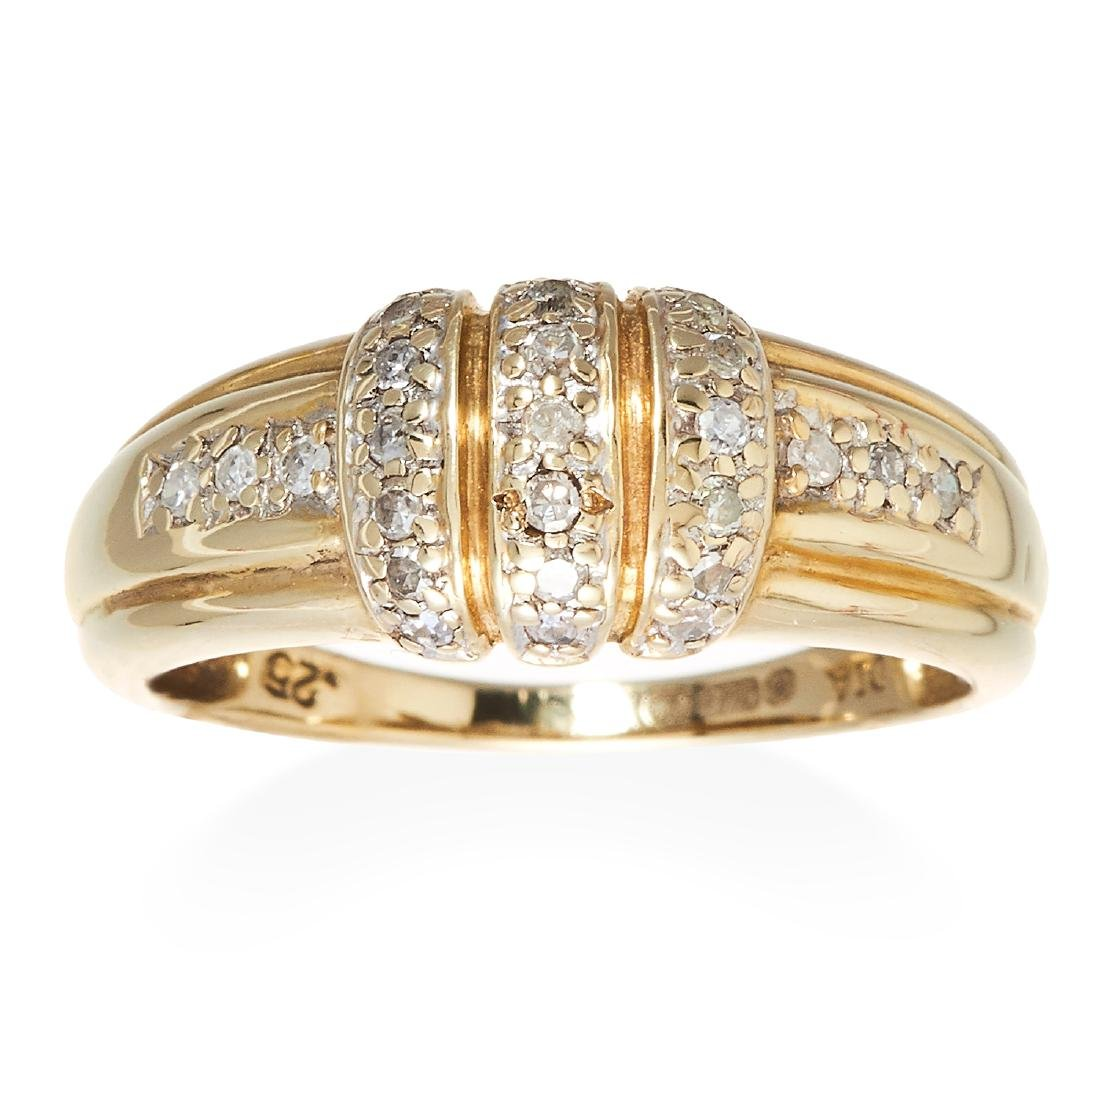 A DIAMOND DRESS RING in 9ct yellow gold, jewelled with